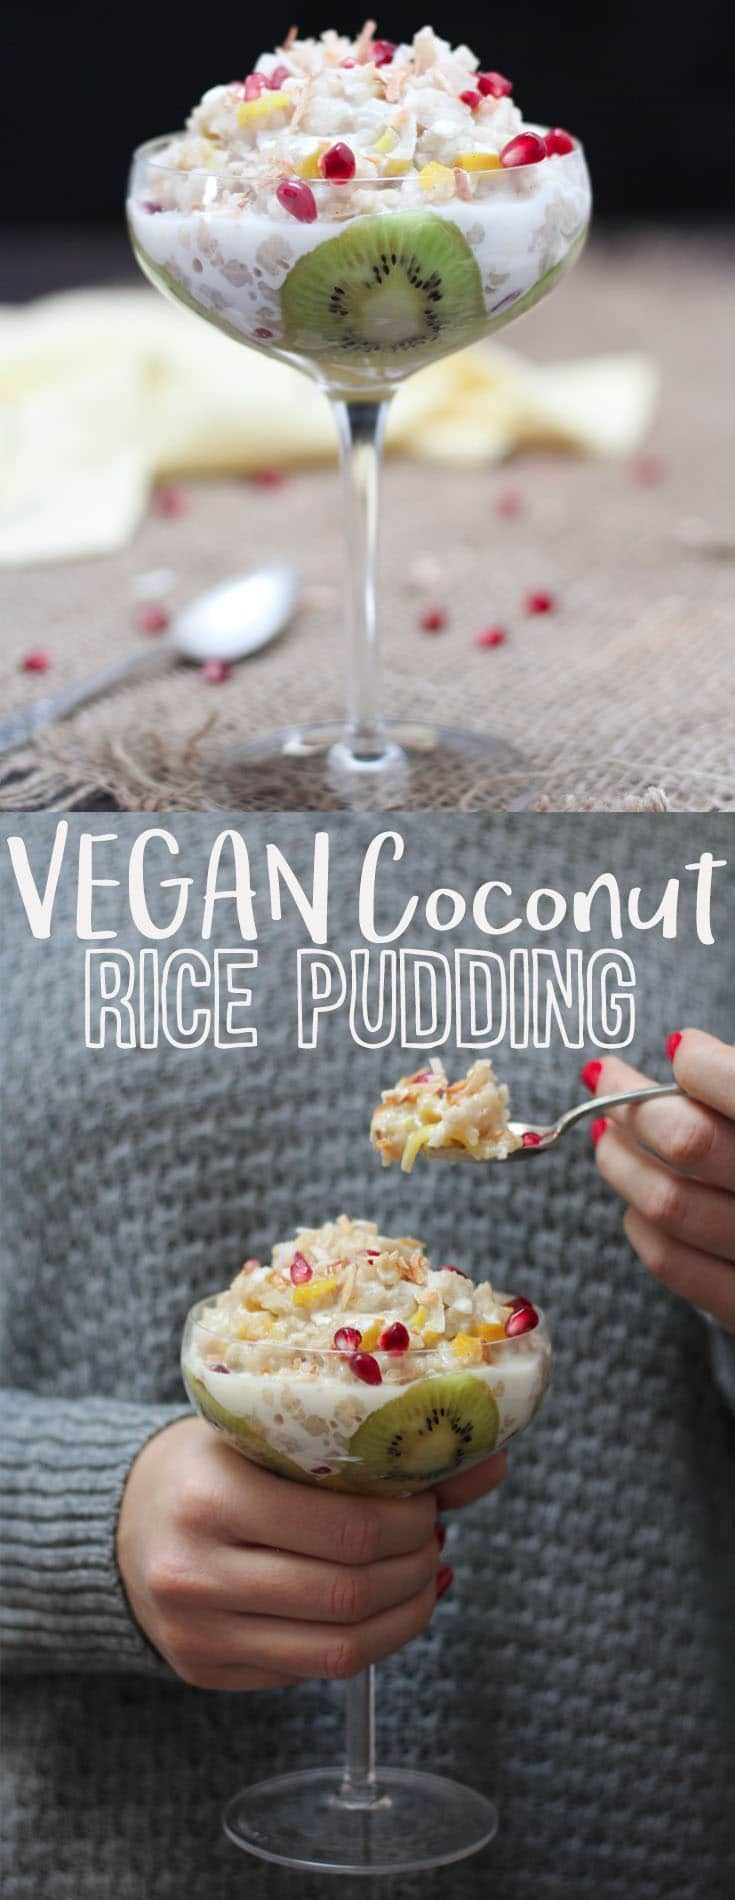 I share my favourite recipe for vegan coconut rice pudding ...